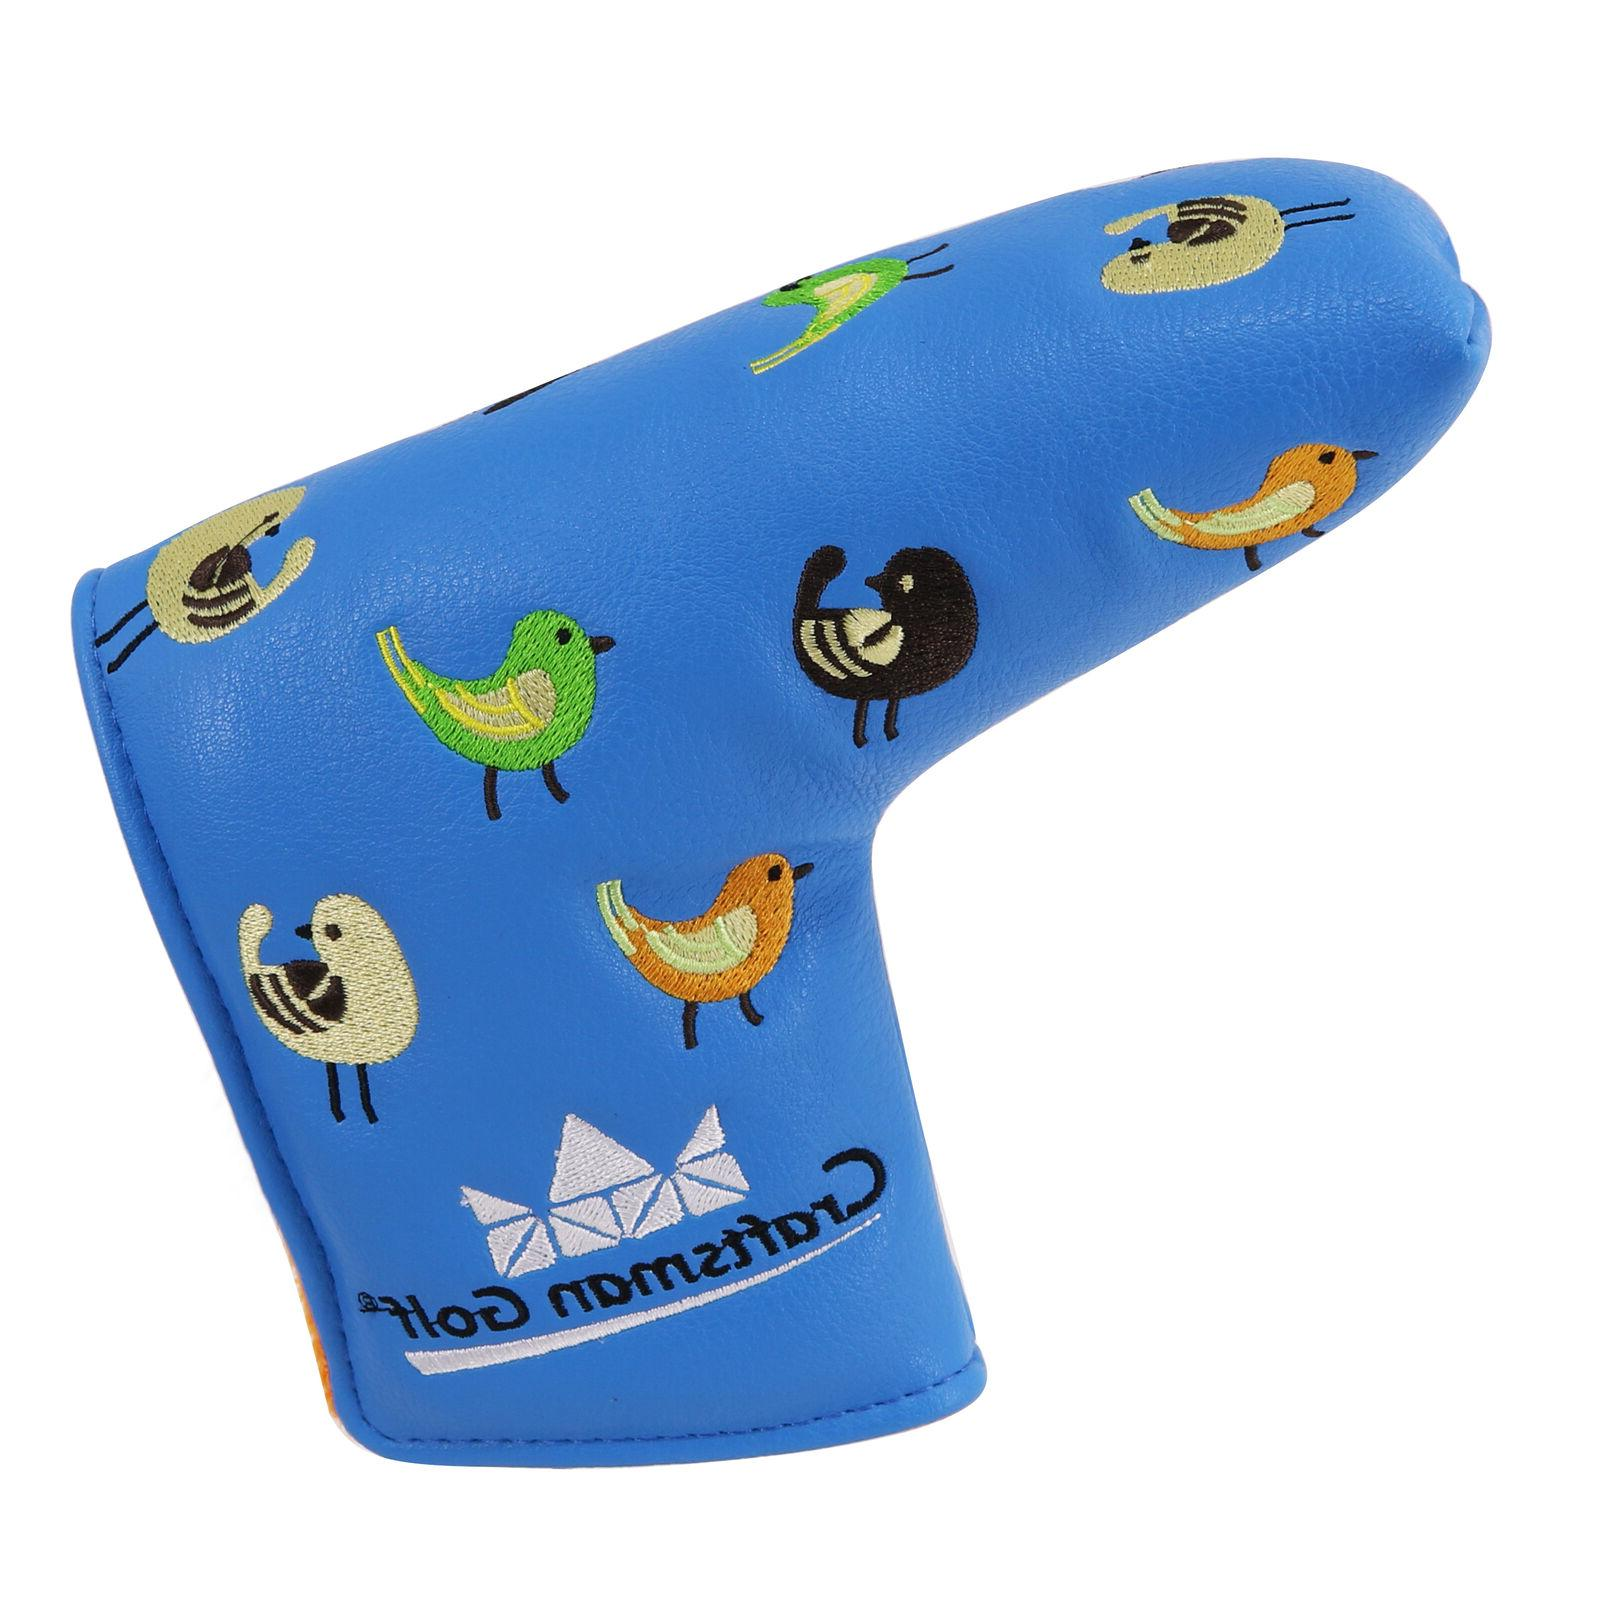 blue putter cover blade headcover for scotty